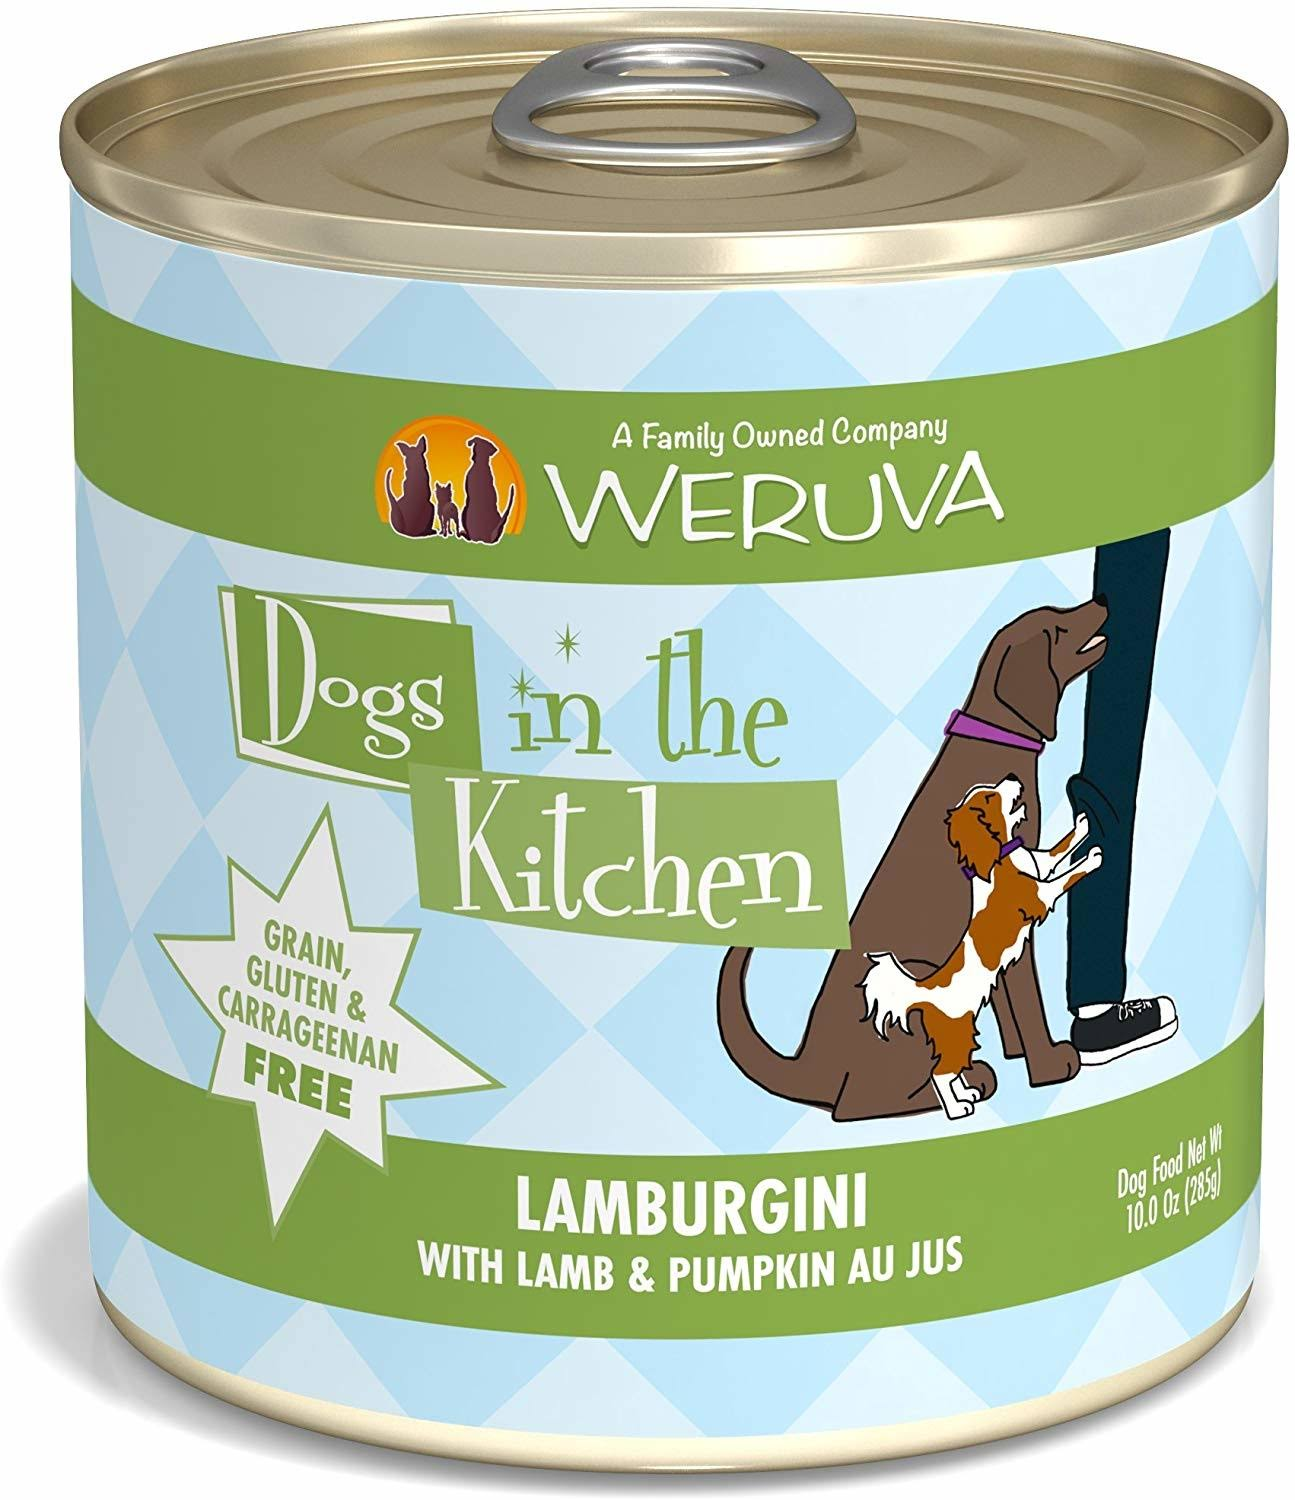 Weruva Dogs in The Kitchen Dog Food - Lamburgini with Lamb Pumpkin Au Jus, 10oz